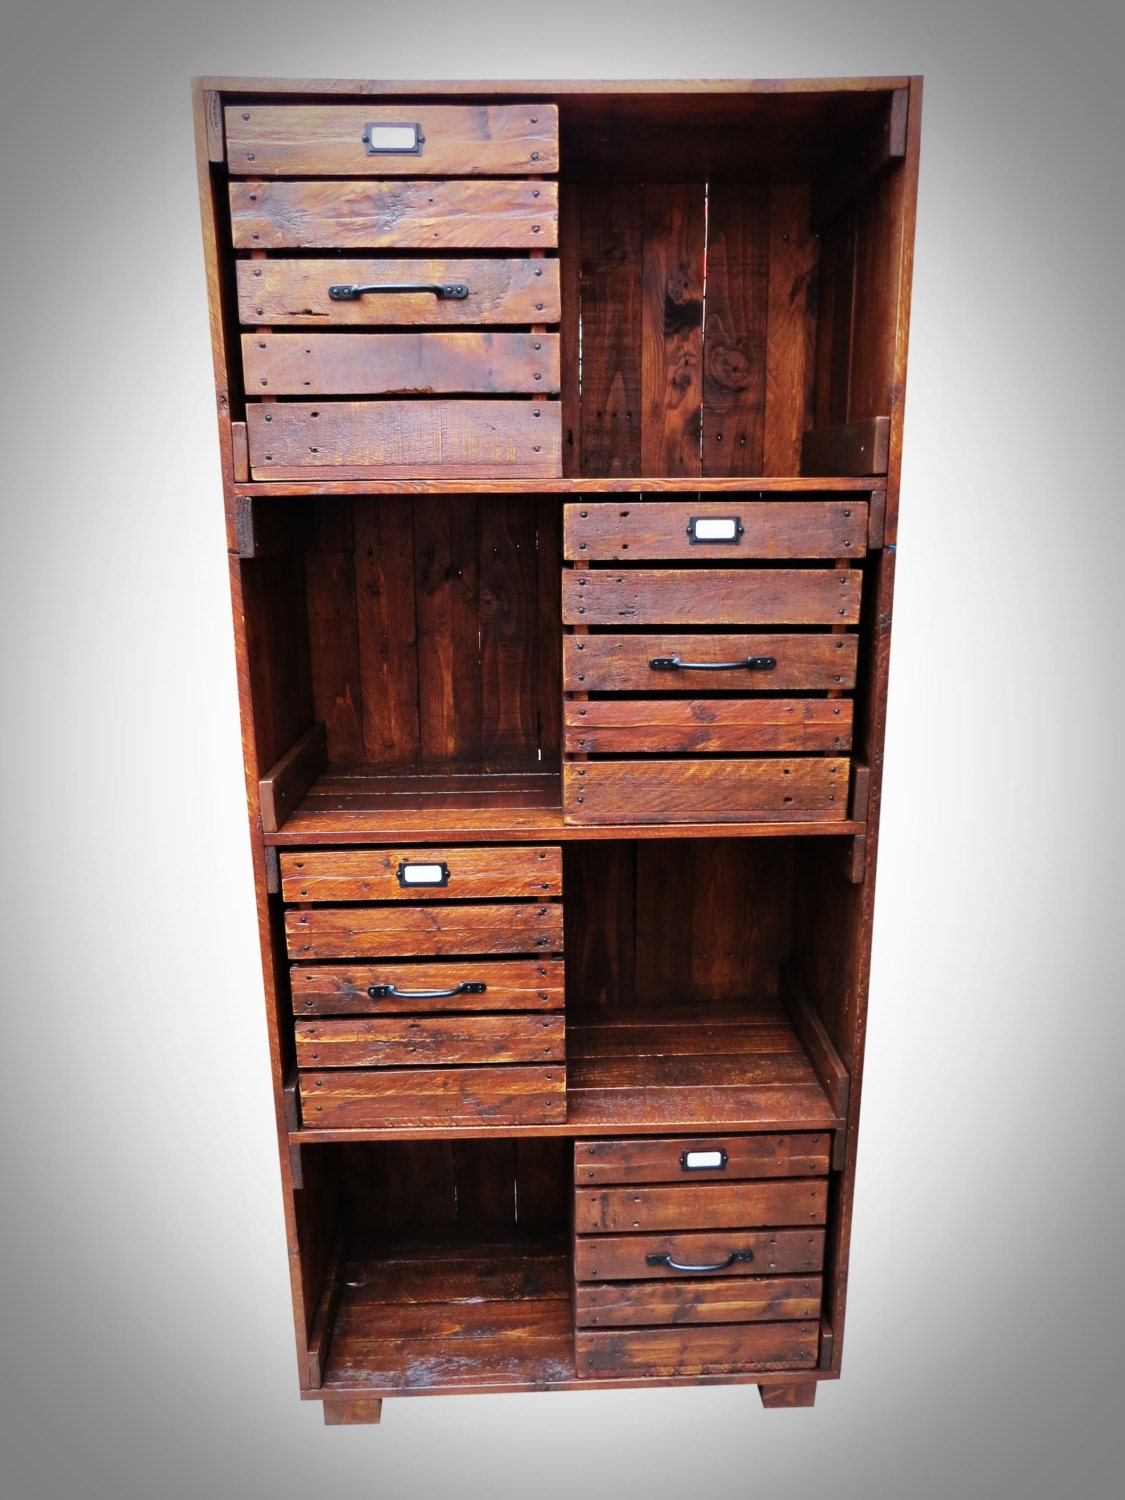 #9B4530 Industrial Style Bookcase With Four Storage By PalletBrighton with 1125x1500 px of Recommended Industrial Style Bookcase 15001125 save image @ avoidforclosure.info